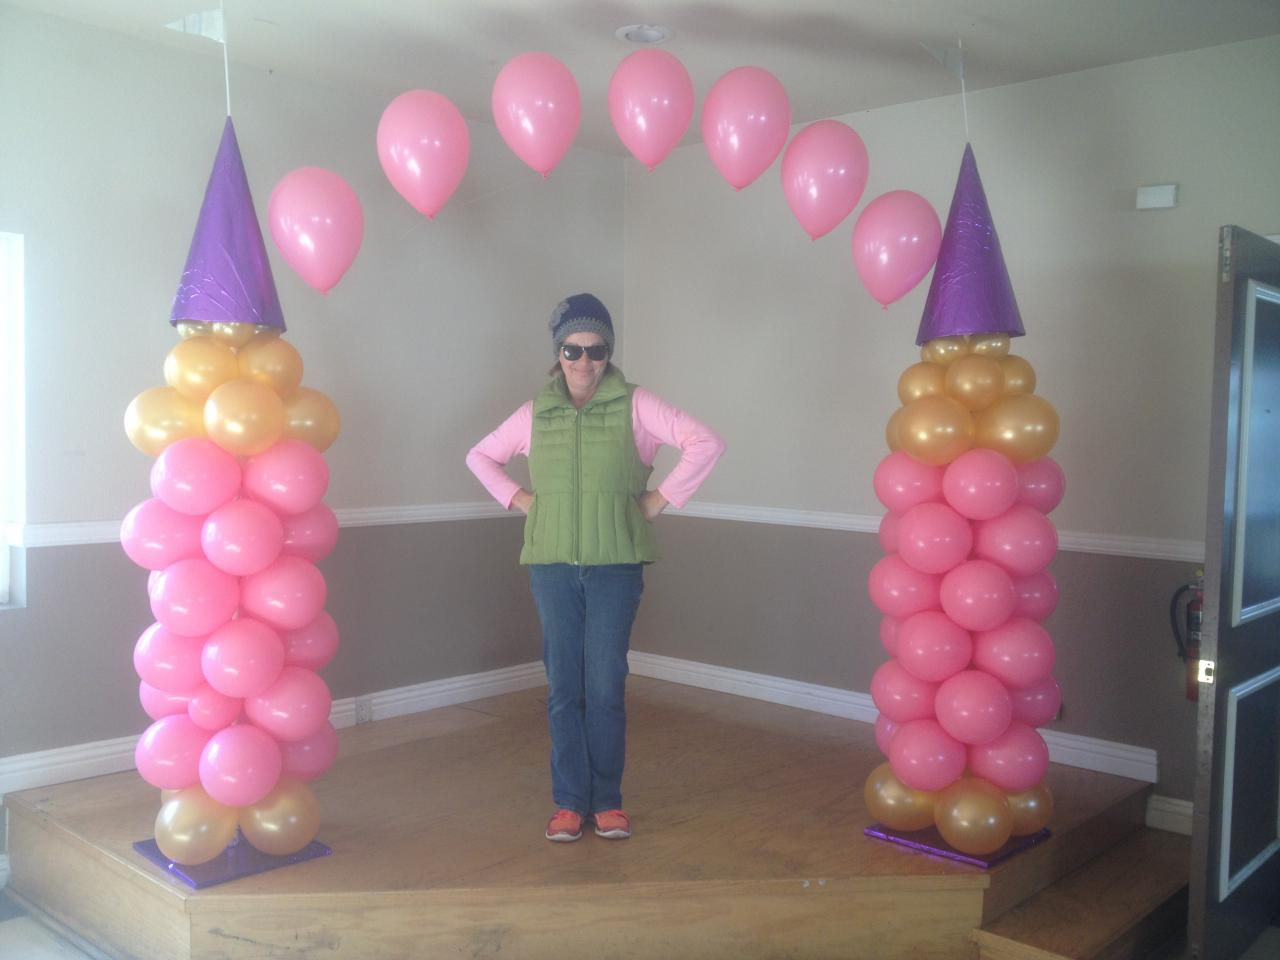 balloon arches can frame a stageor highlight an entrance to an eventthey add elegance and color to any celebrationand make events memorable